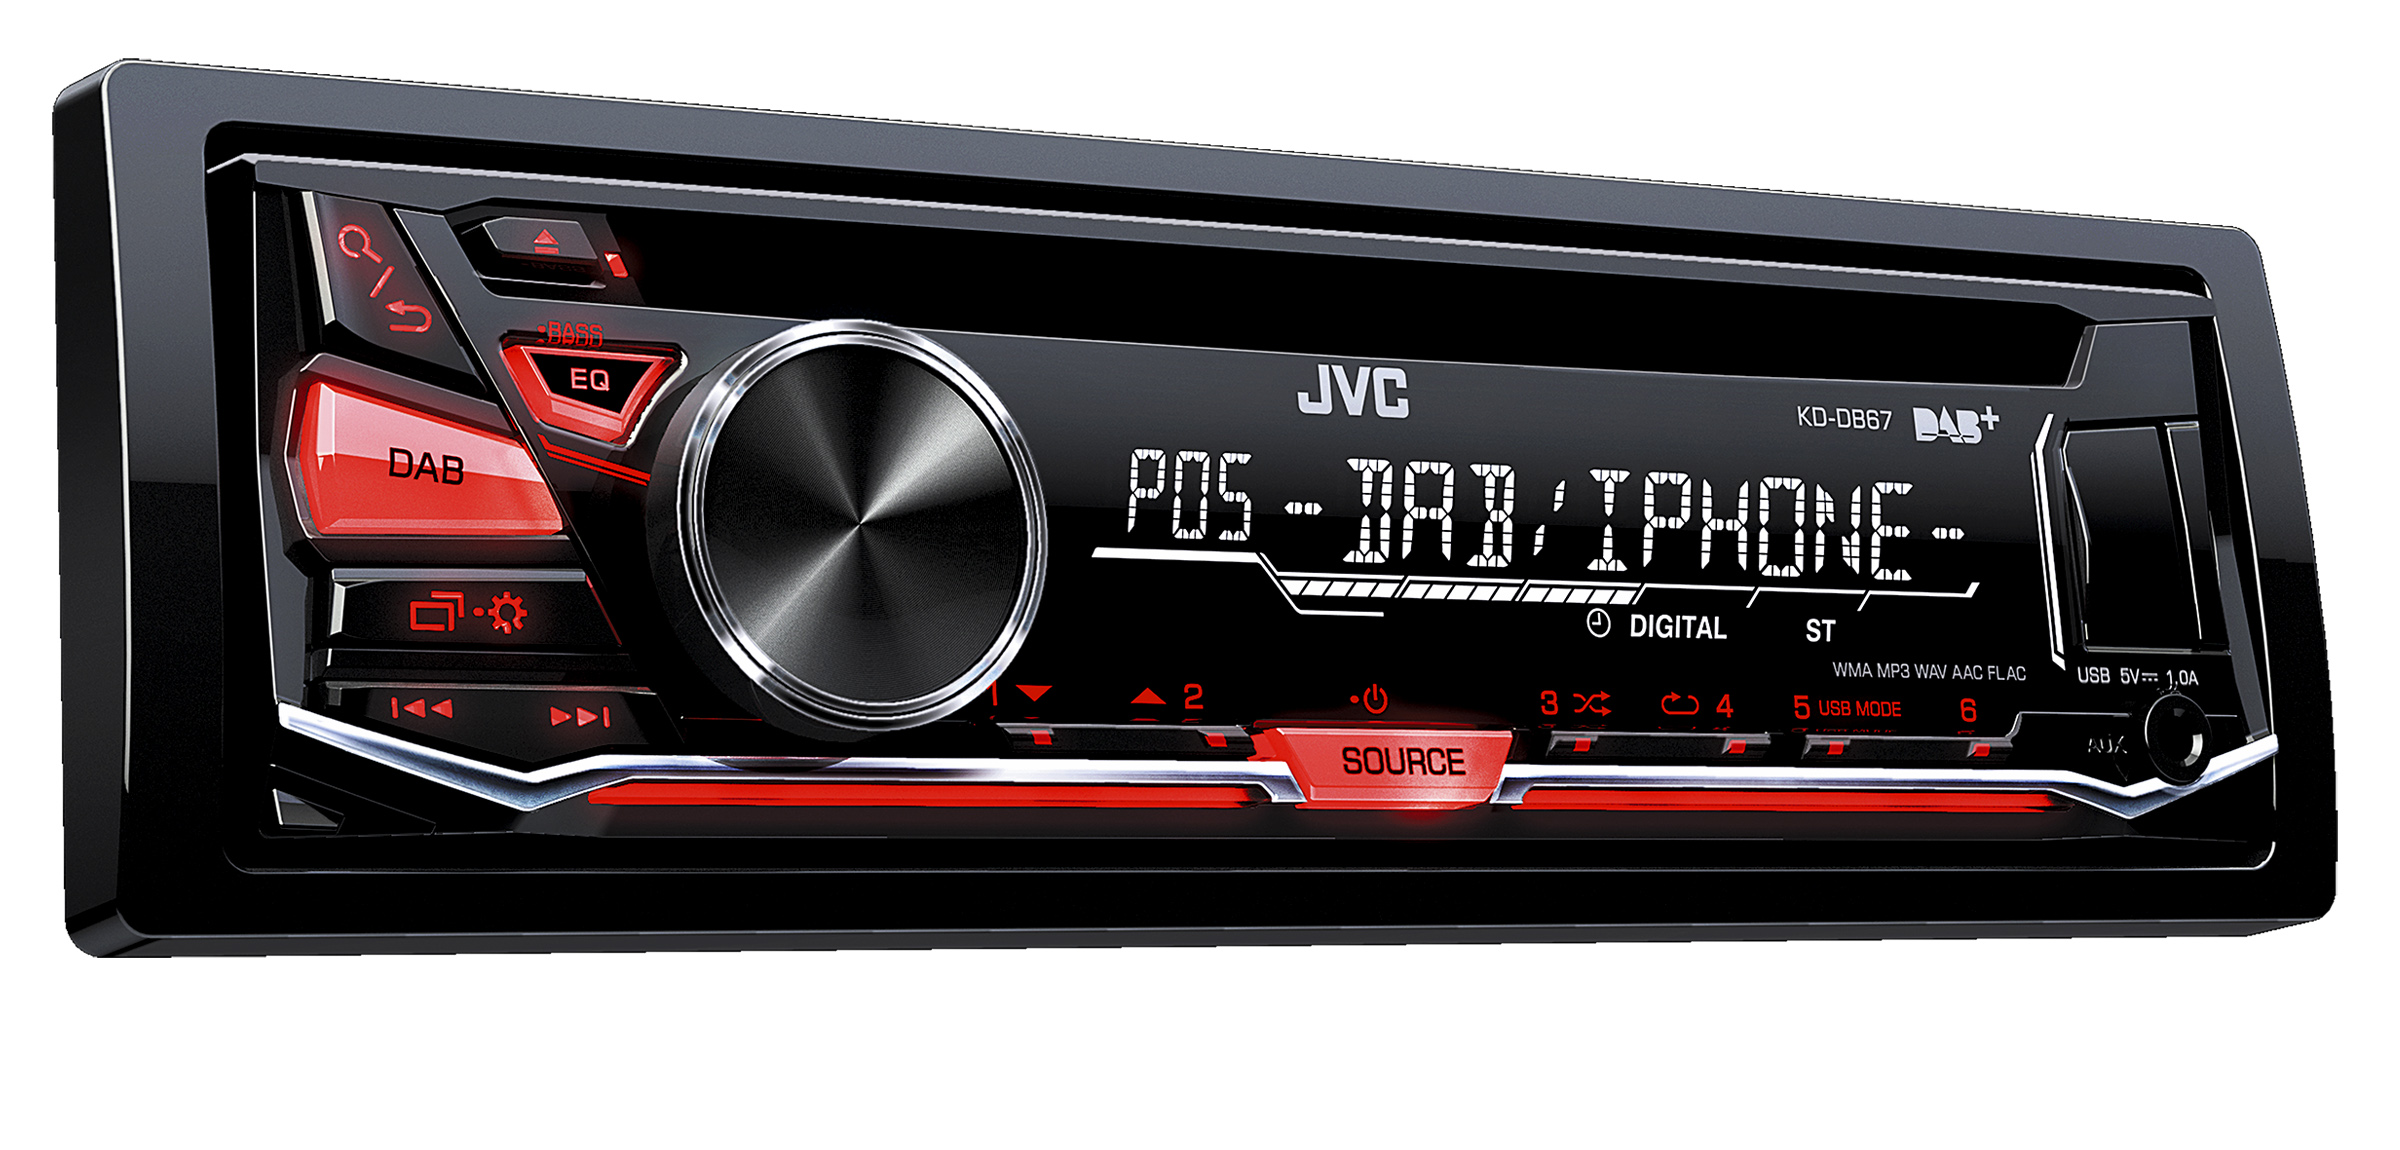 JVC KD-DB65 Receiver Drivers for Windows